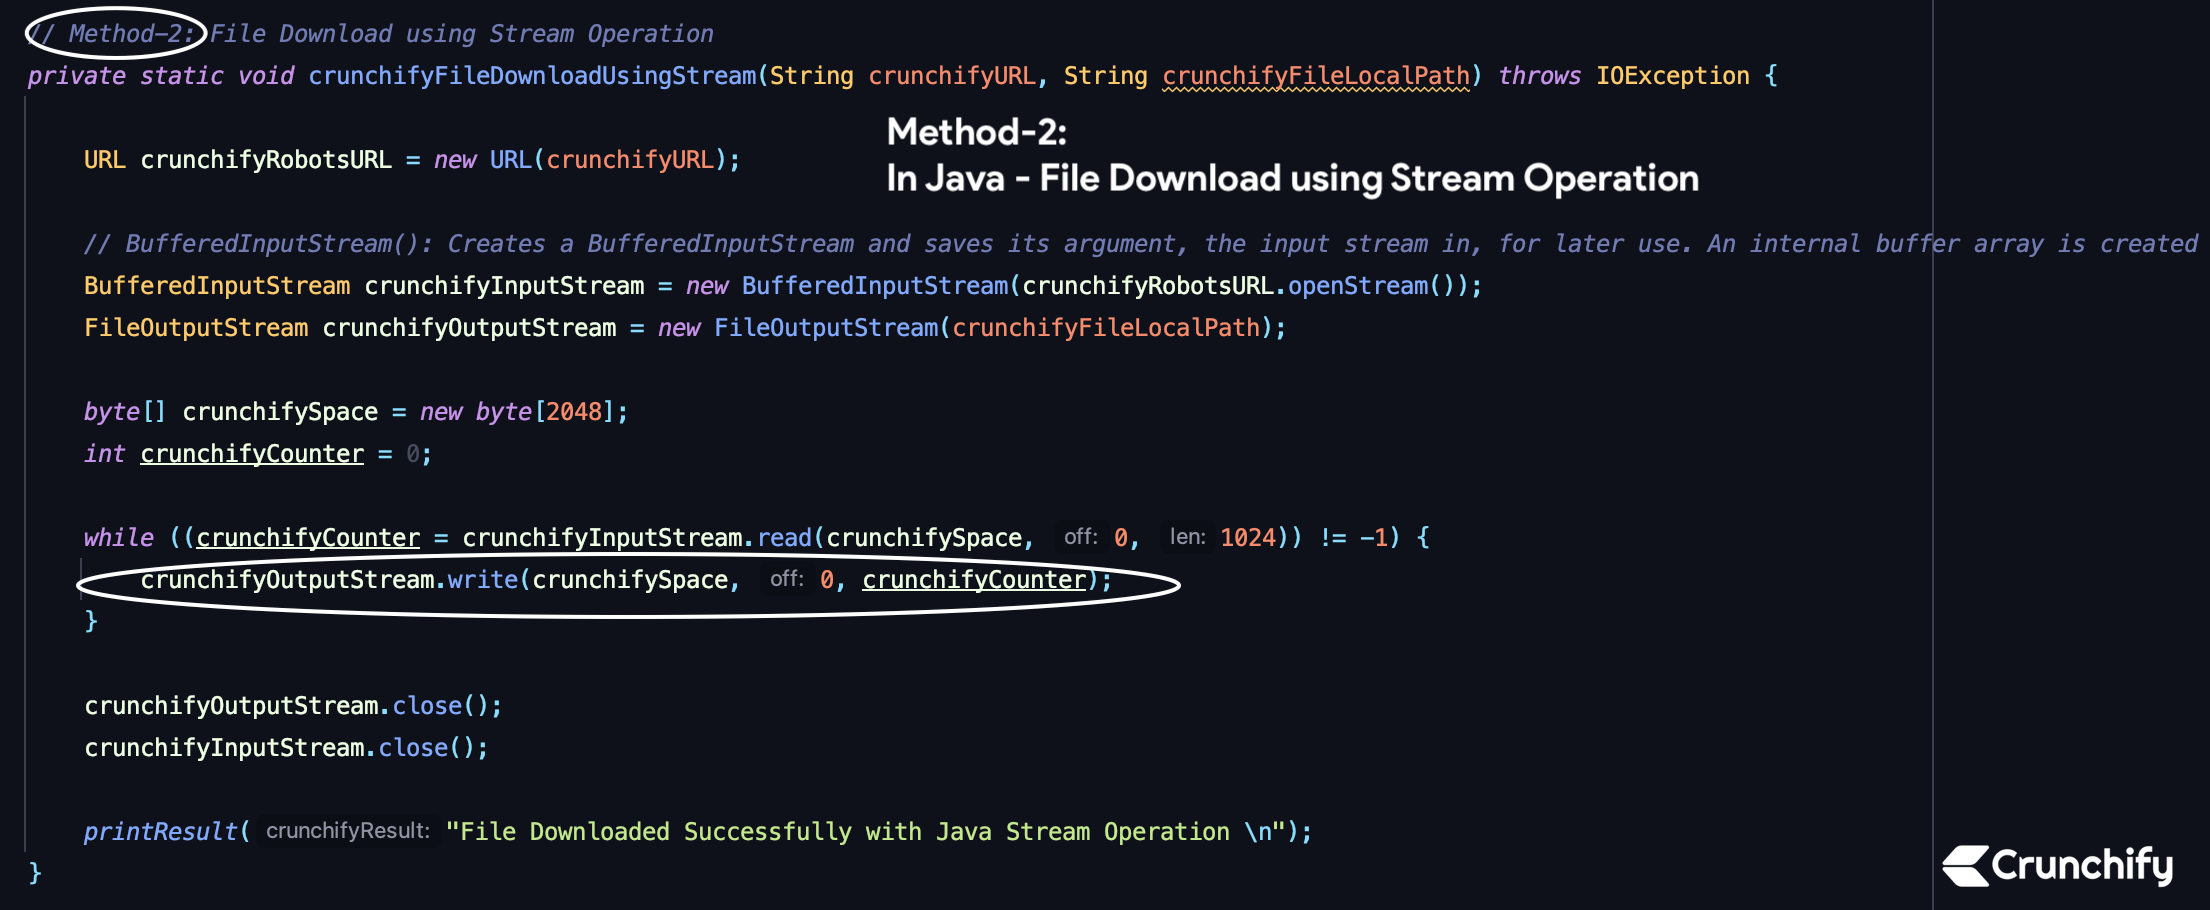 In Java - File Download using Stream Operation